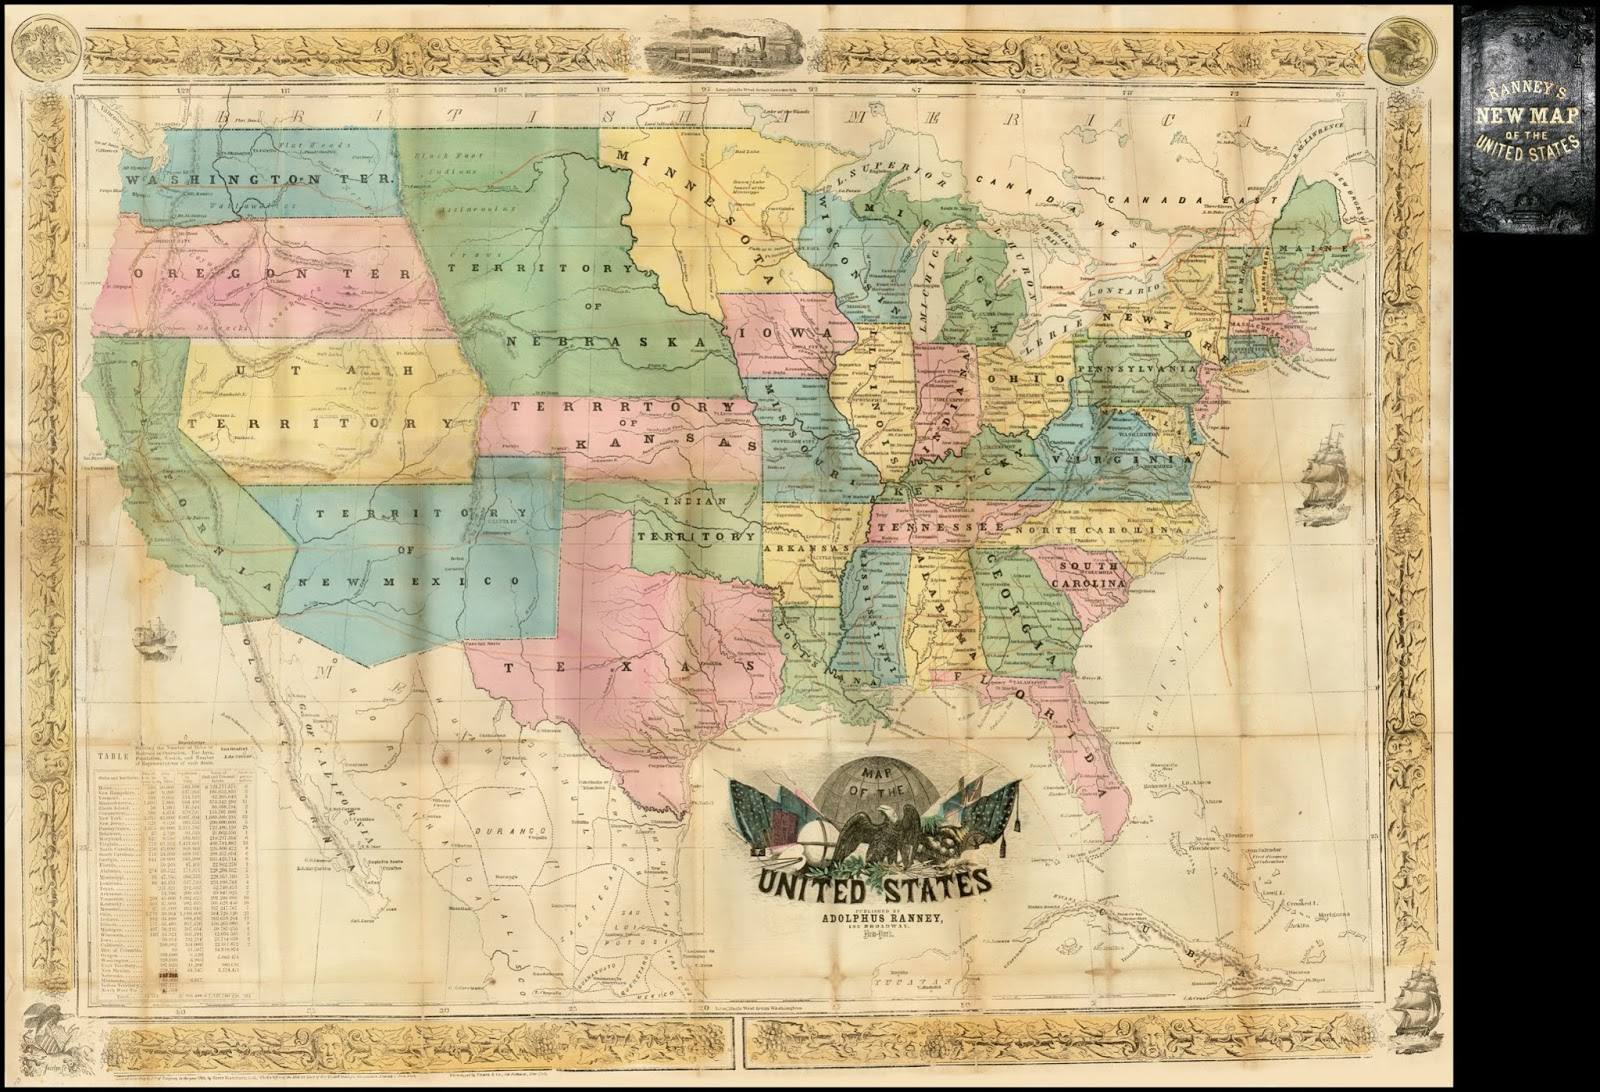 Ranney's new map of the United States (1854)